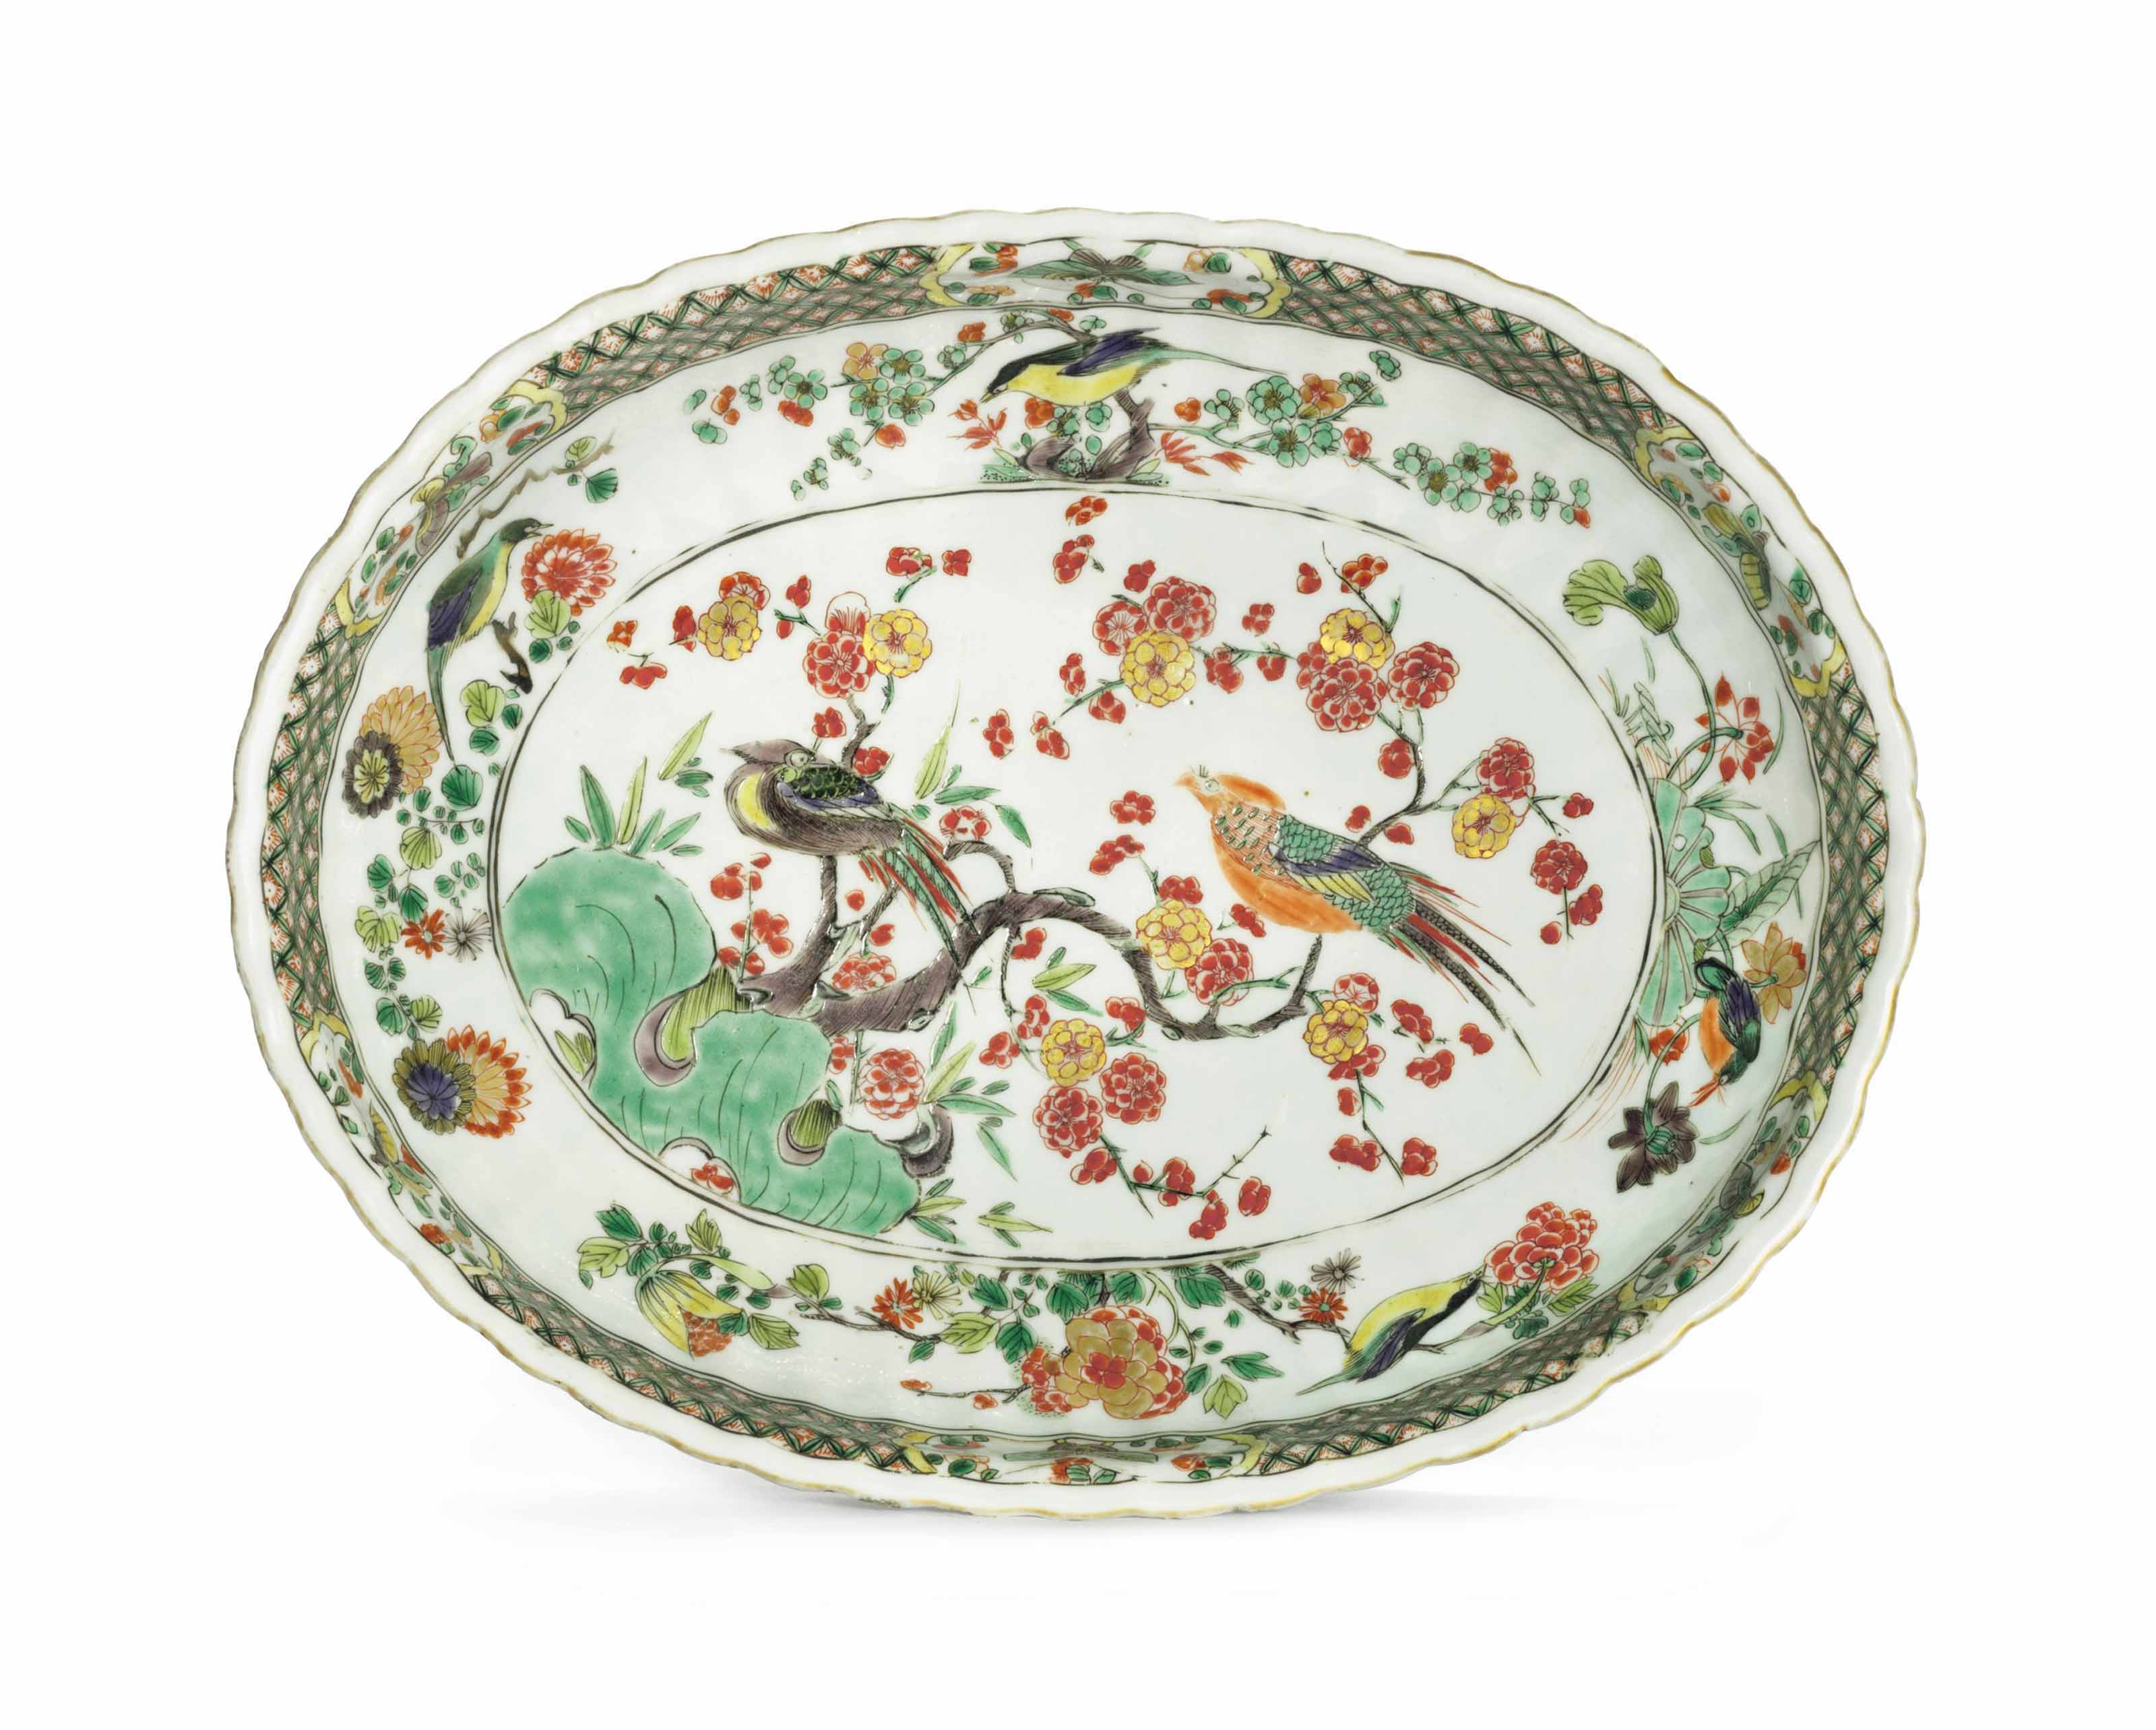 A FAMILLE VERTE SCALLOPED OVAL